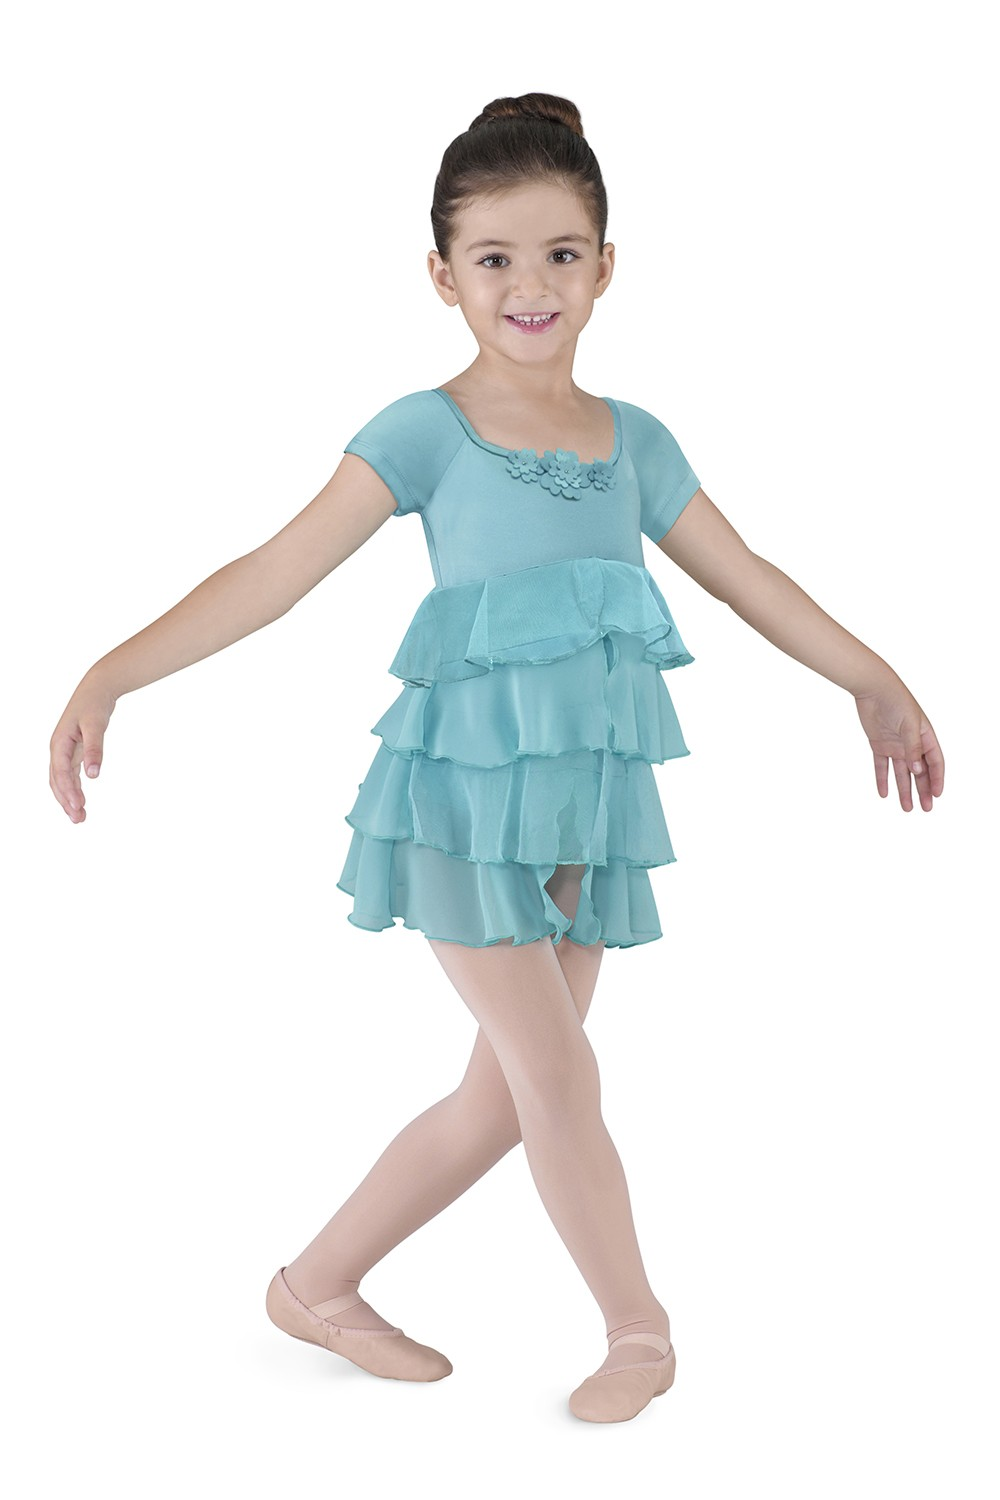 Astaire Children's Dance Leotards